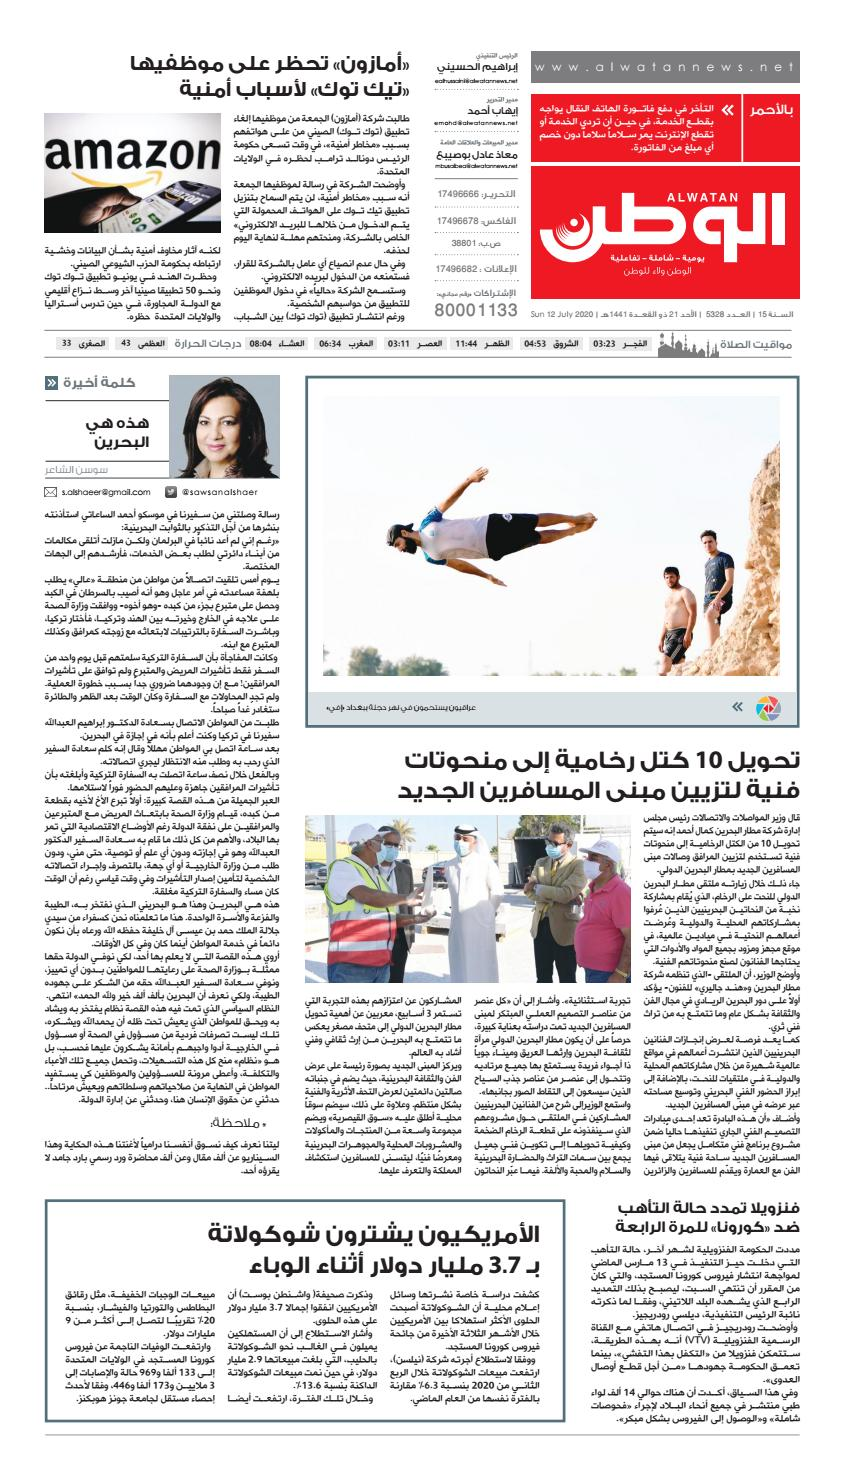 Alwatan 12 JUL 2020 by Alwatan_BH - issuu